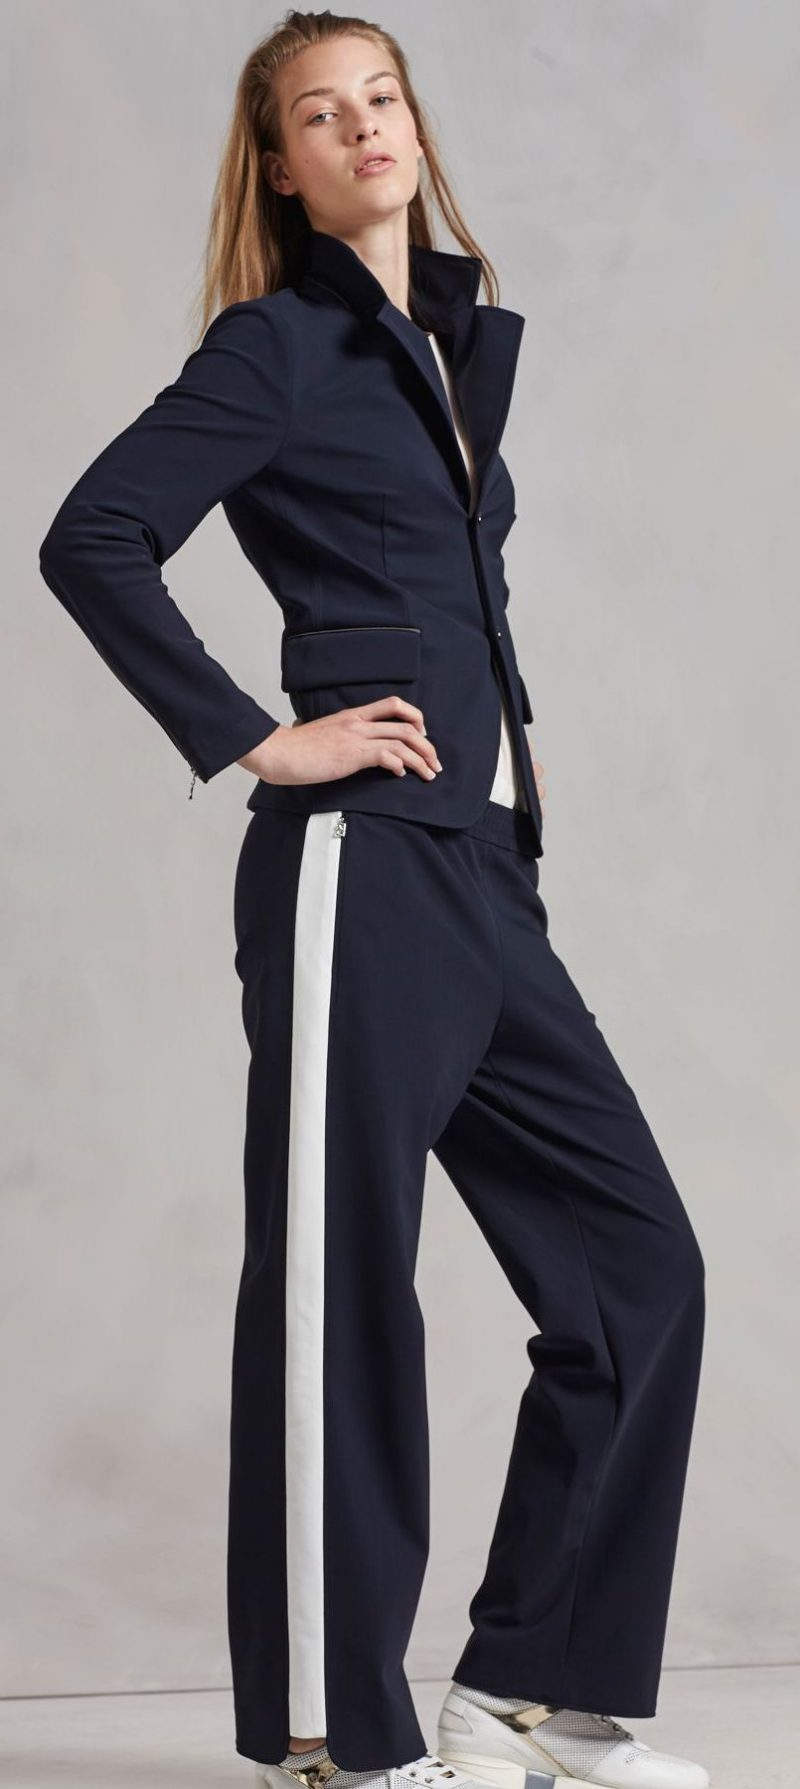 38 Ways To Look Awesome In Side Stripe Pants 2019